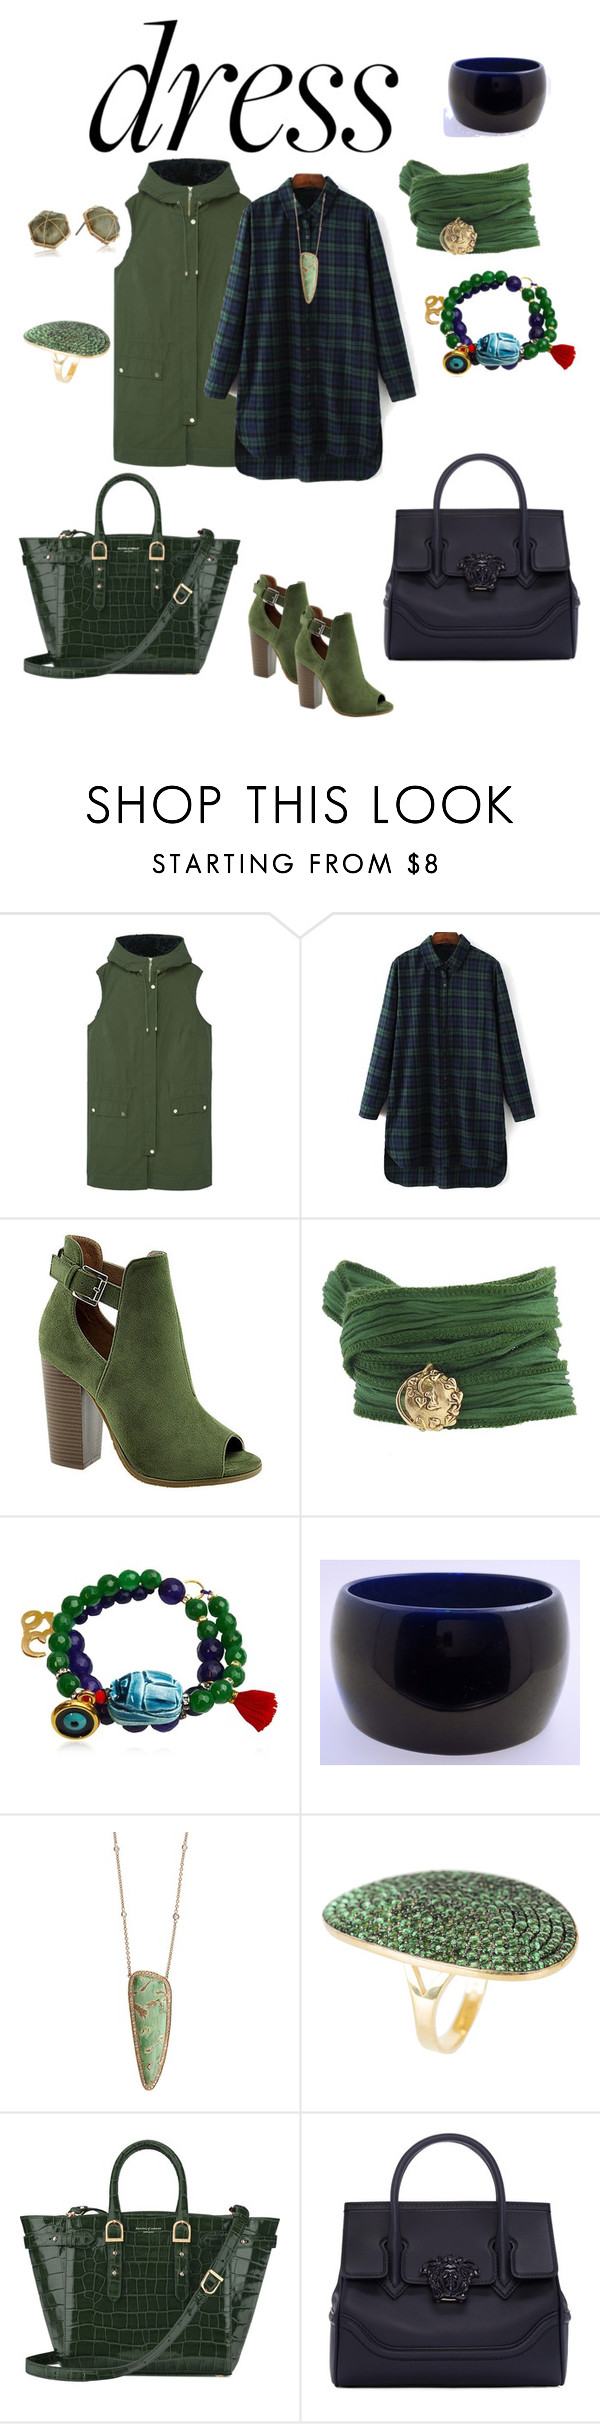 """""""LongSleeveDressContest"""" by miashelton1326 on Polyvore featuring MANGO, Bella Marie, Catherine Michiels, Katerina Psoma, Jacquie Aiche, Latelita, Aspinal of London, Versace and Panacea"""